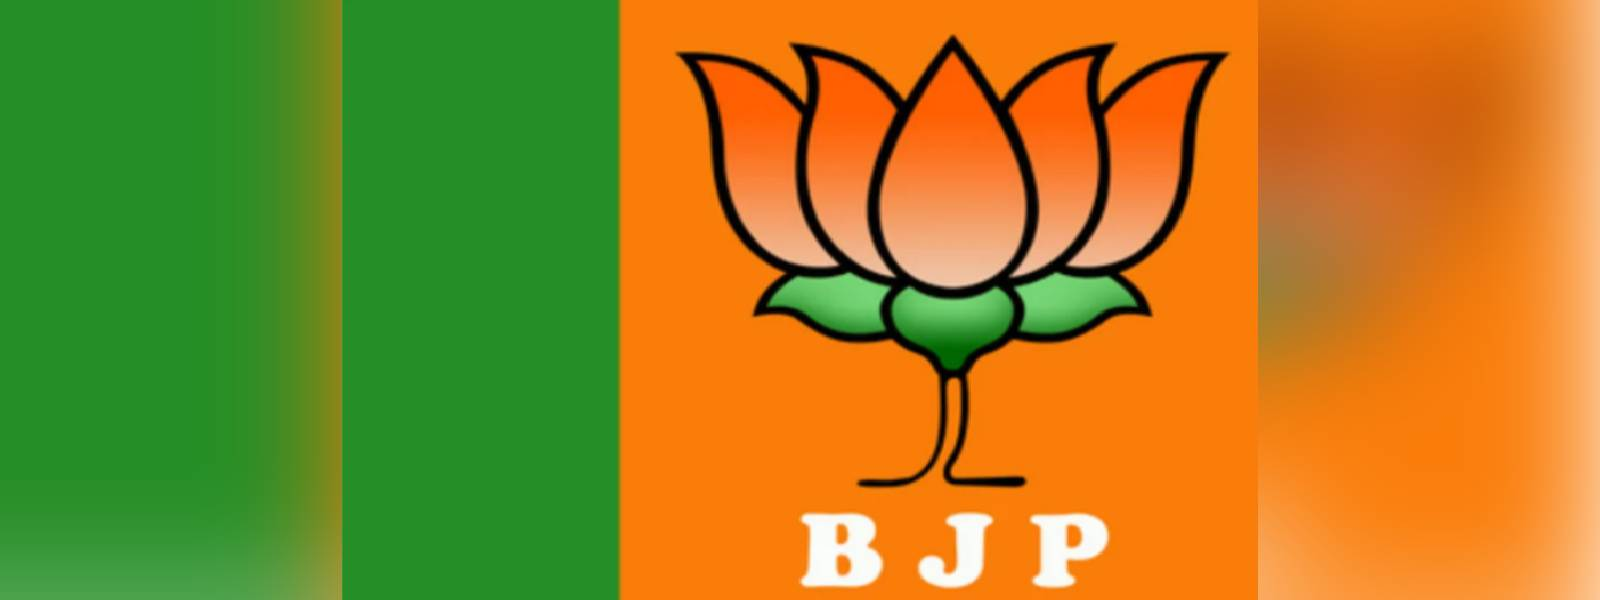 Nepal condemns BJP's plan to expand in Nepal & Sri Lanka